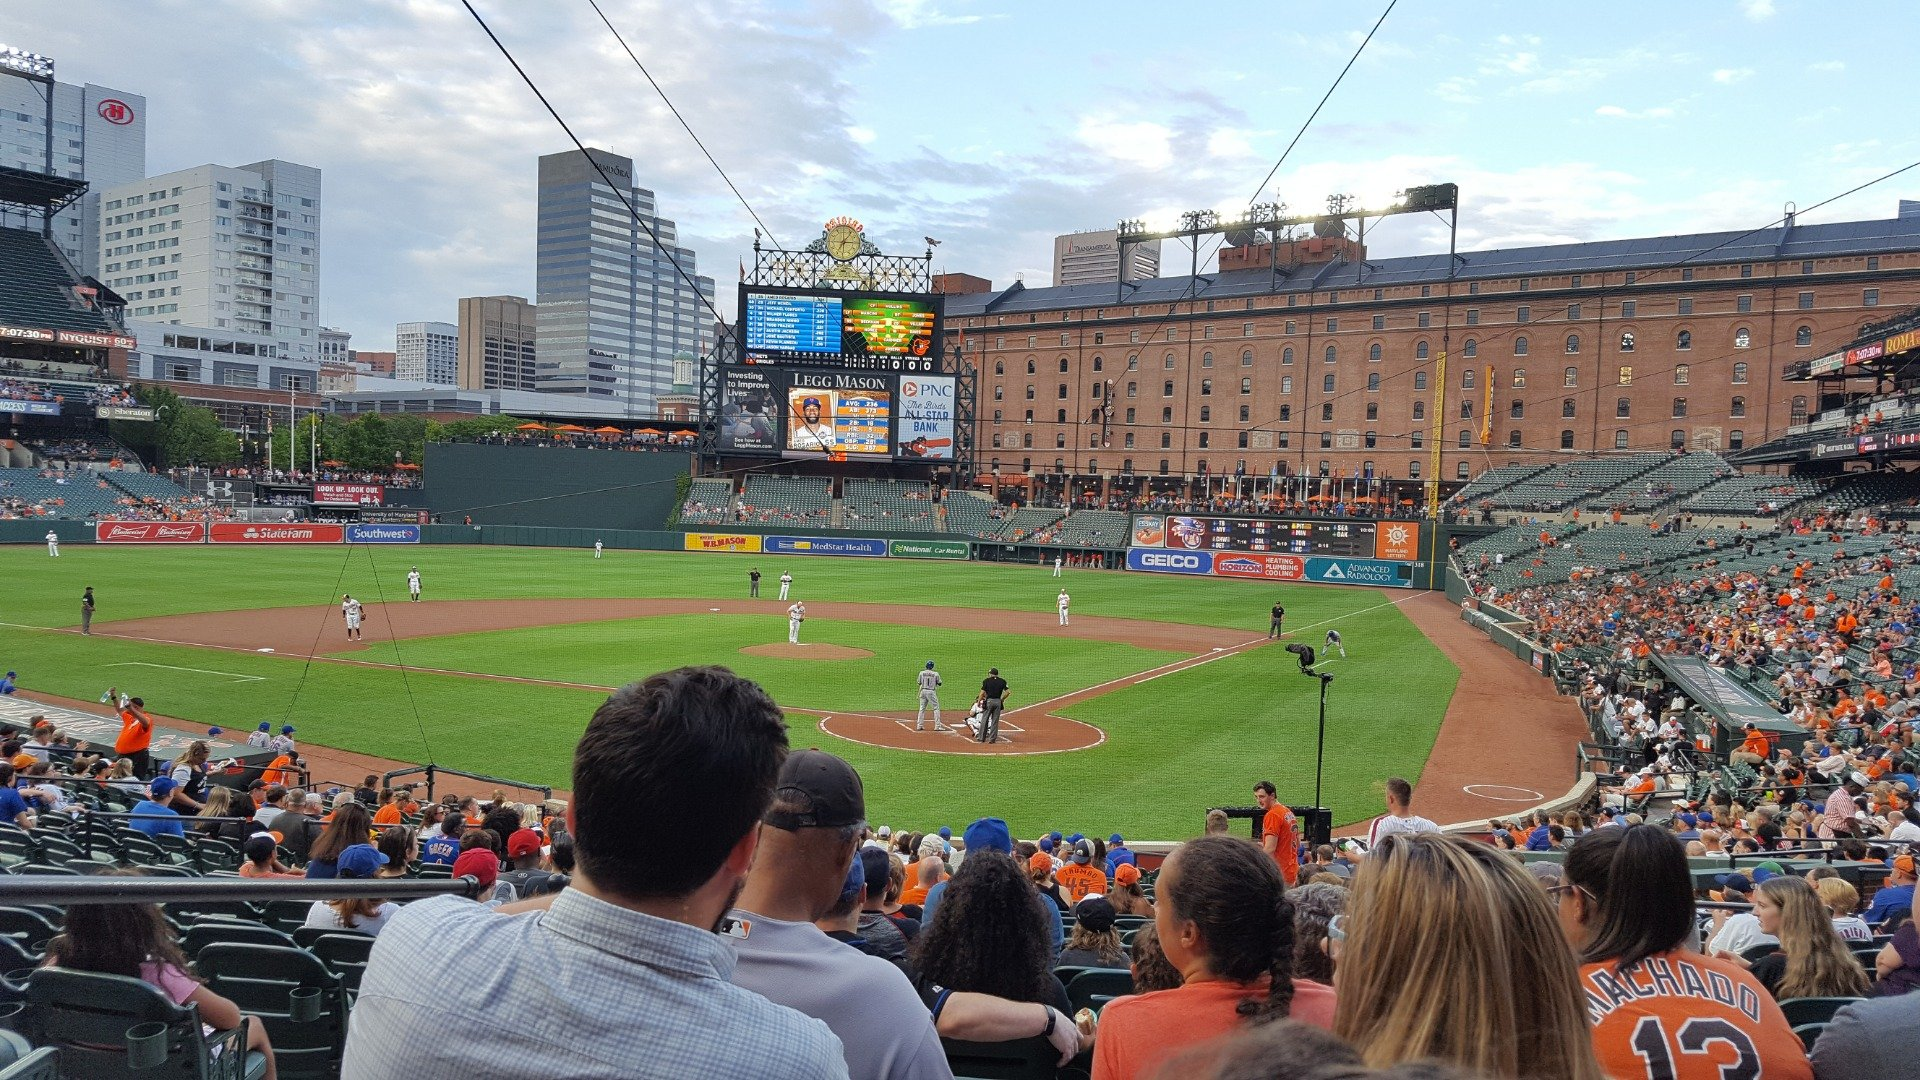 Oriole Park at Camden Yards Section 40 Row 27 Seat 10-11